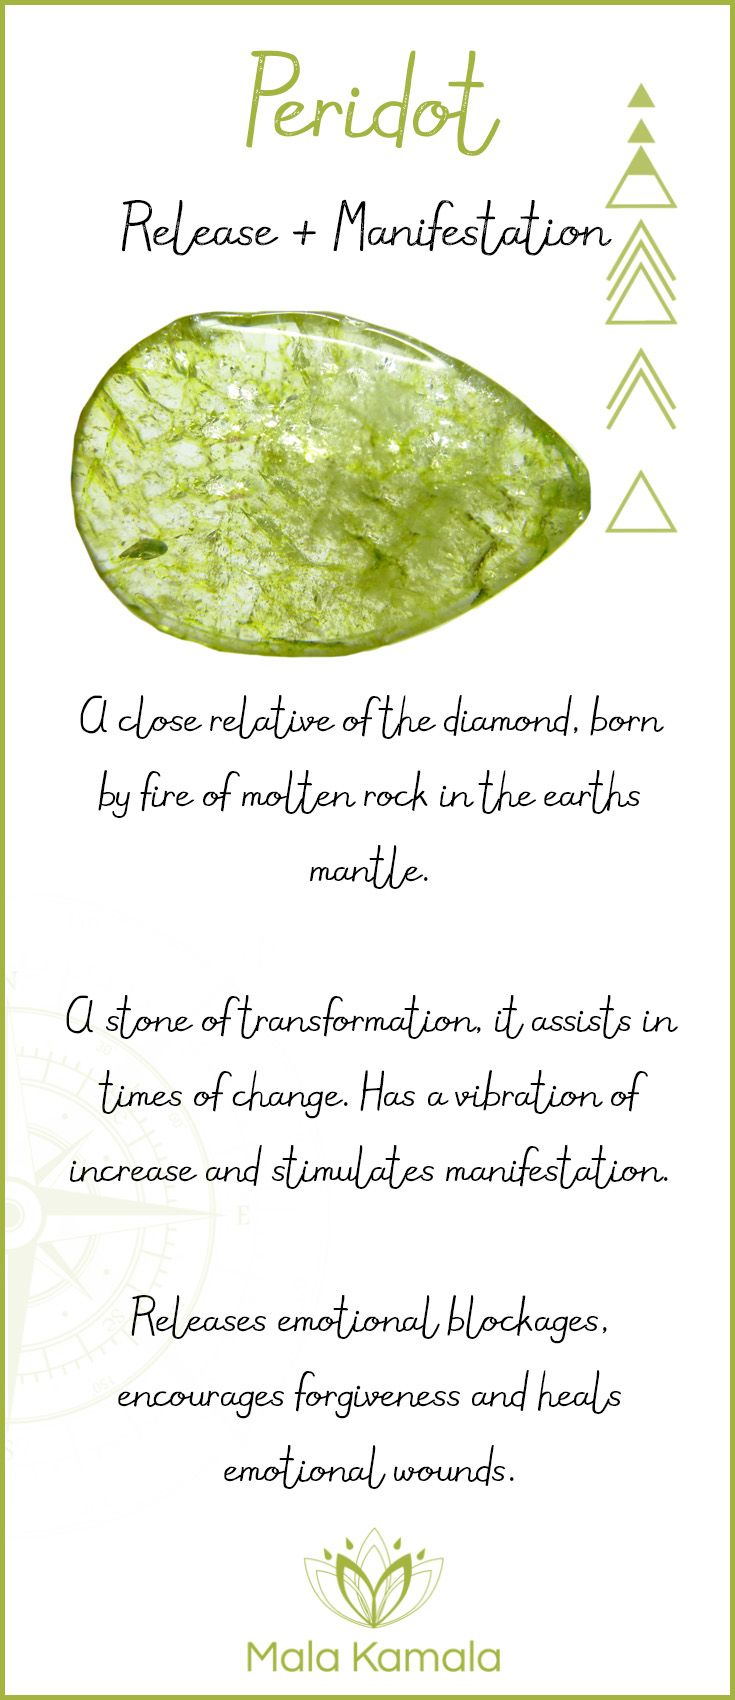 Pin To Save, Tap To Shop The Gem. What is the meaning and crystal and chakra healing properties of peridot? A stone for release, letting go and manifestation. Mala Kamala Mala Beads - Malas, Mala Beads, Mala Bracelets, Tiny Intentions, Baby Necklaces, Yoga Jewelry, Meditation Jewelry, Baltic Amber Necklaces, Gemstone Jewelry, Chakra Healing and Crystal Healing Jewelry, Mala Necklaces, Prayer Beads, Sacred Jewelry, Bohemian Boho Jewelry, Childrens and Babies Jewelry.